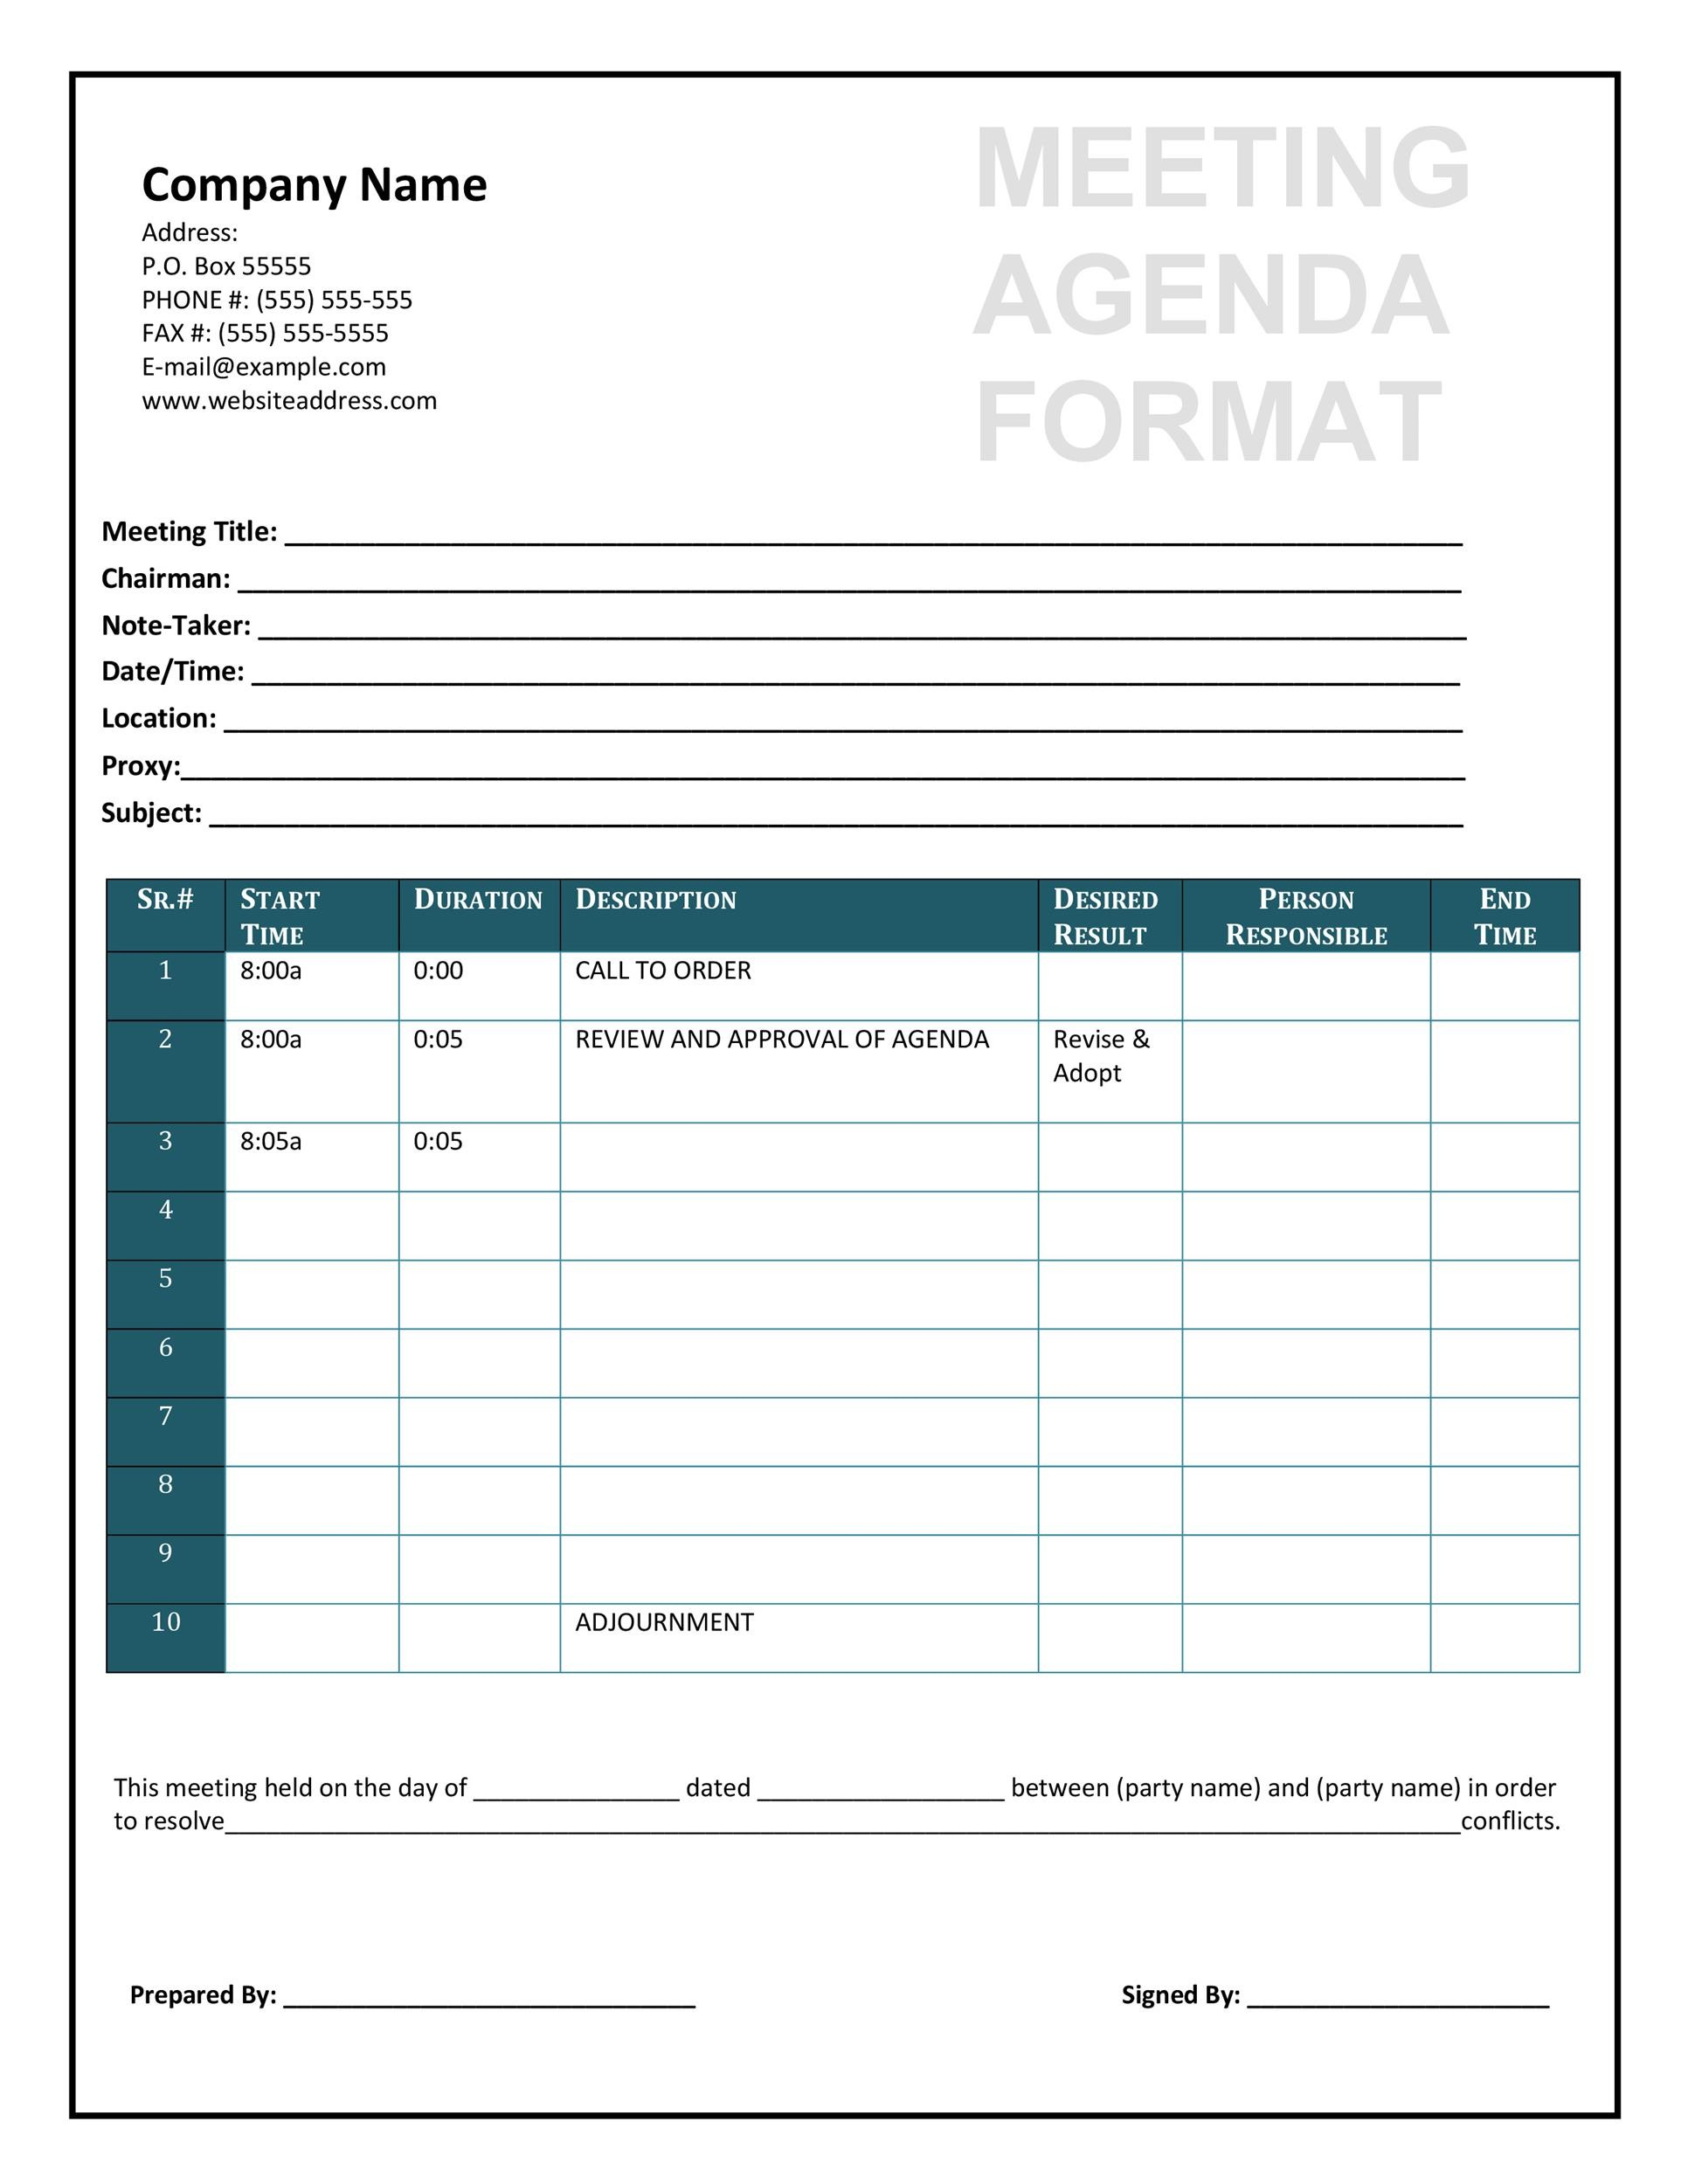 46 Effective Meeting Agenda Templates - Template Lab - format for an agenda